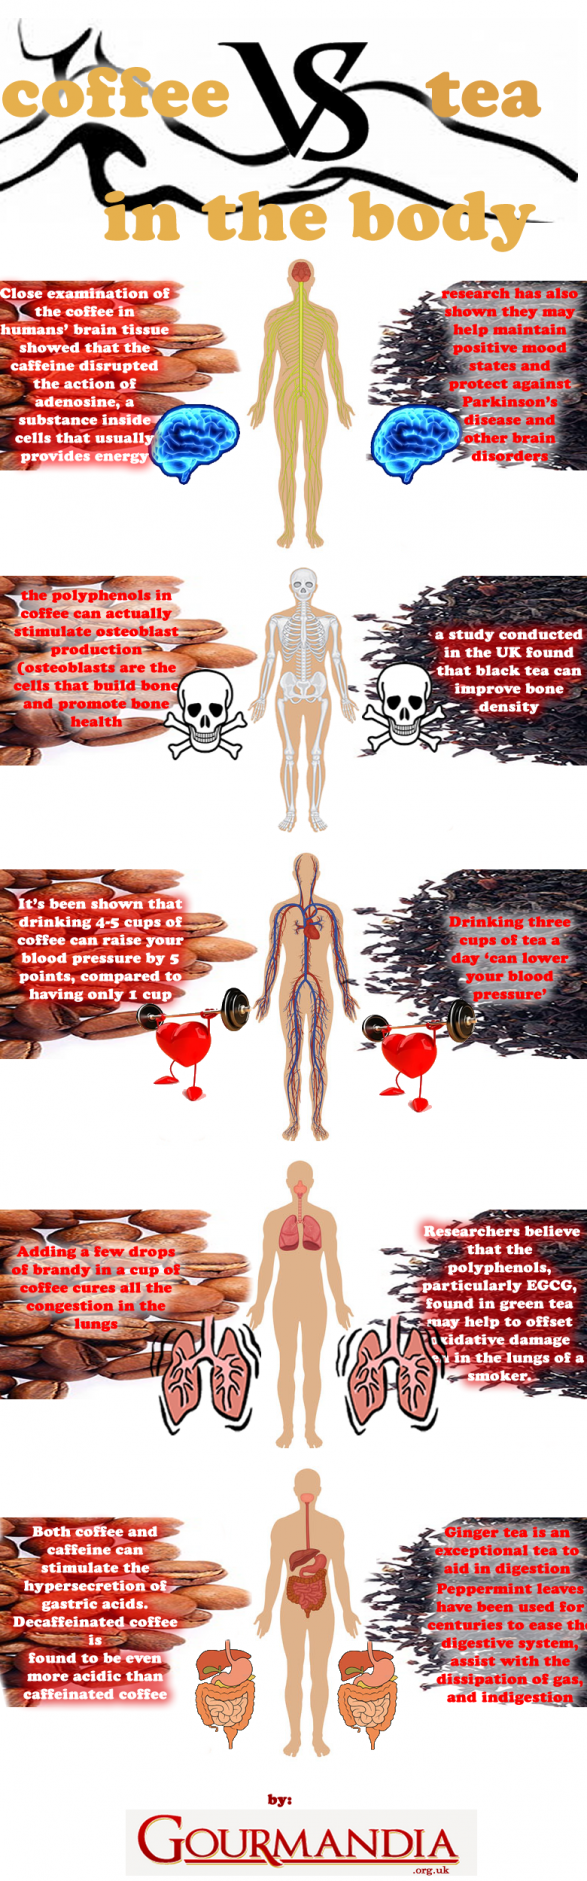 Coffee Vs. Tea in the Body